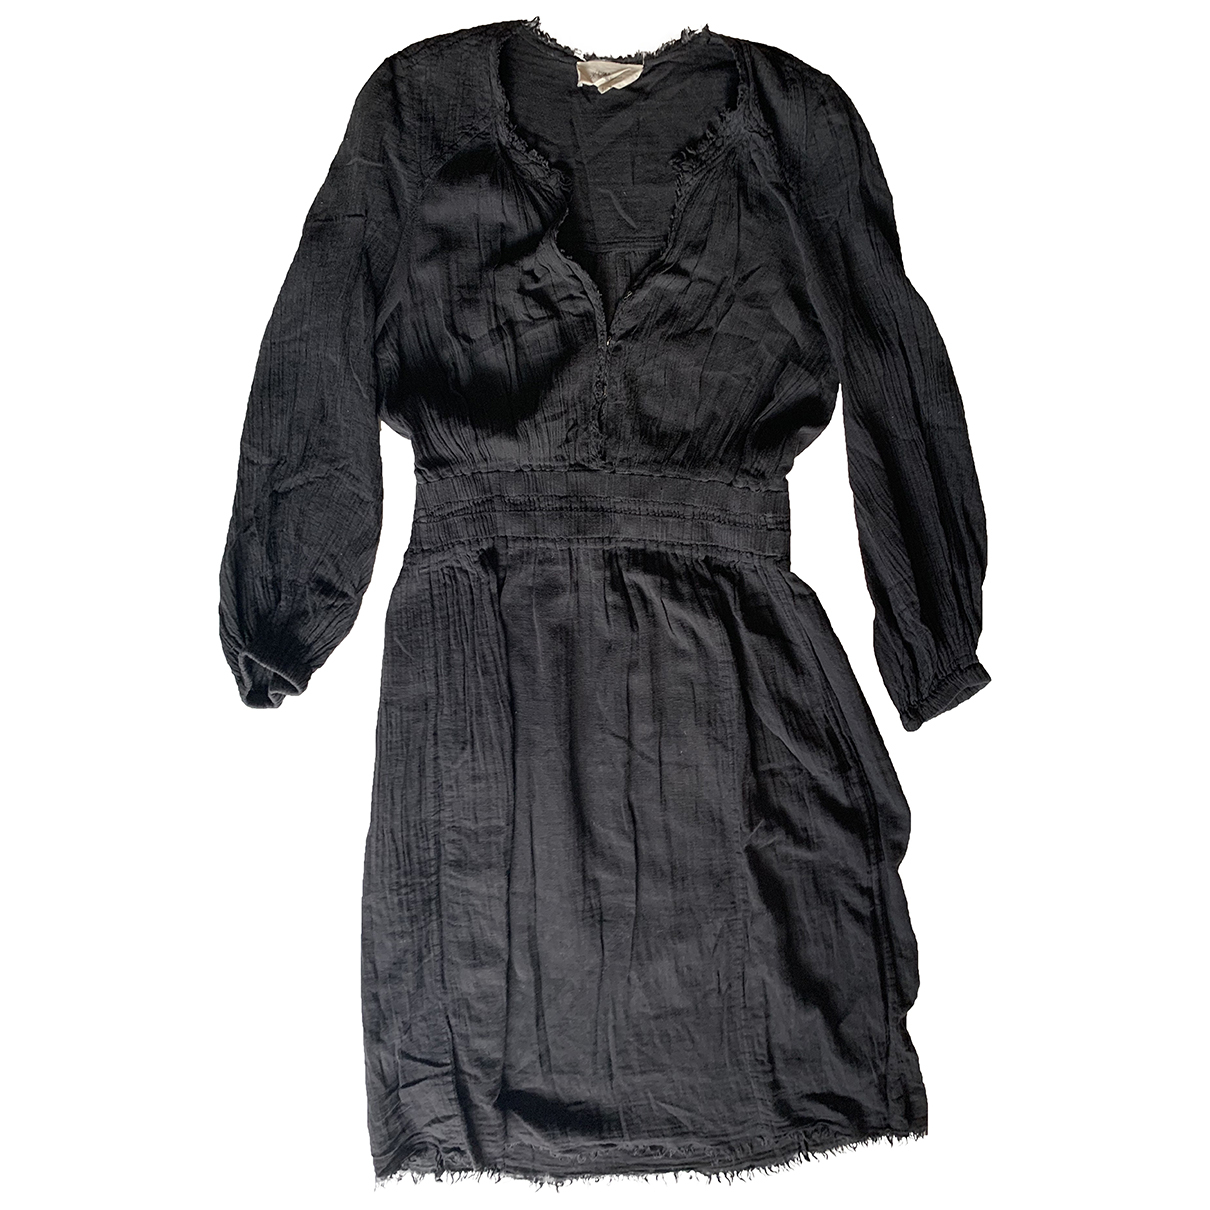 Isabel Marant Etoile \N Black Cotton dress for Women 3 0-5